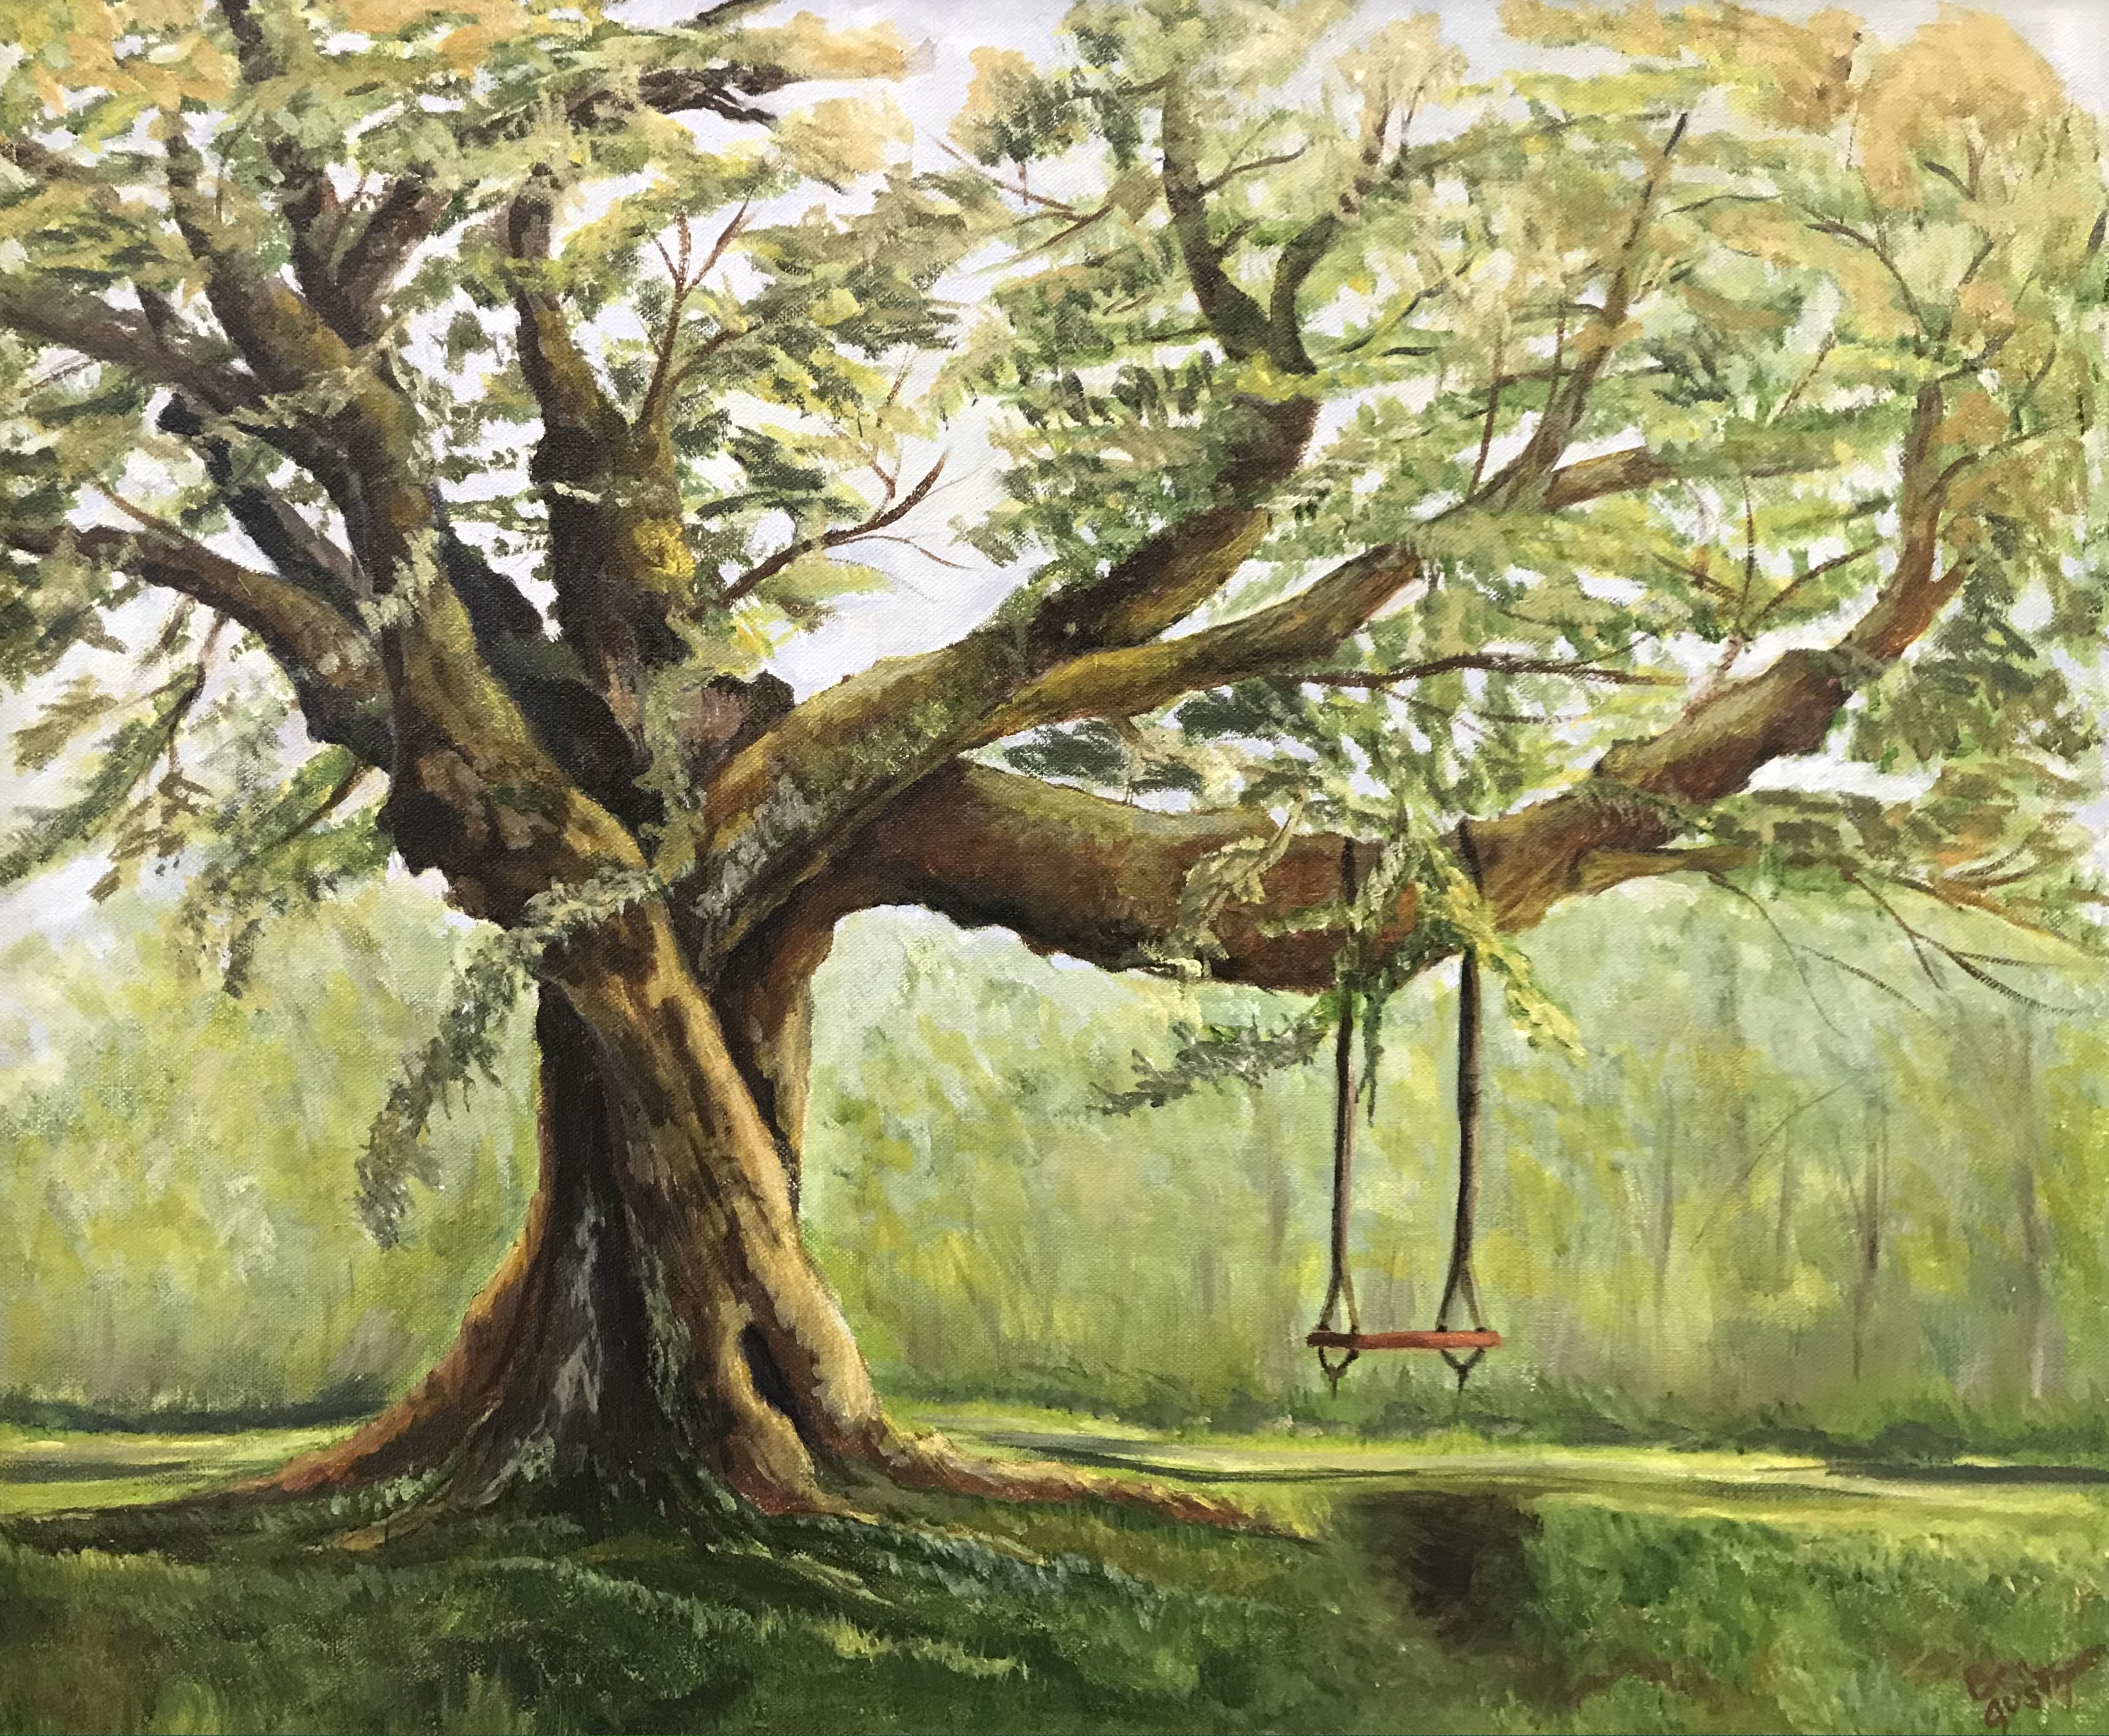 'Empty Swing', oil on canvas by Bea Gustafson ($1,350) ⎼ 'I can still hear the children playing. Through my paintings, I hope to inspire an awareness of the beauty and fragility of our world. An intimate portrait of not so long ago, we can get a glimpse of our natural world bringing us closer to an understanding of ourselves.'